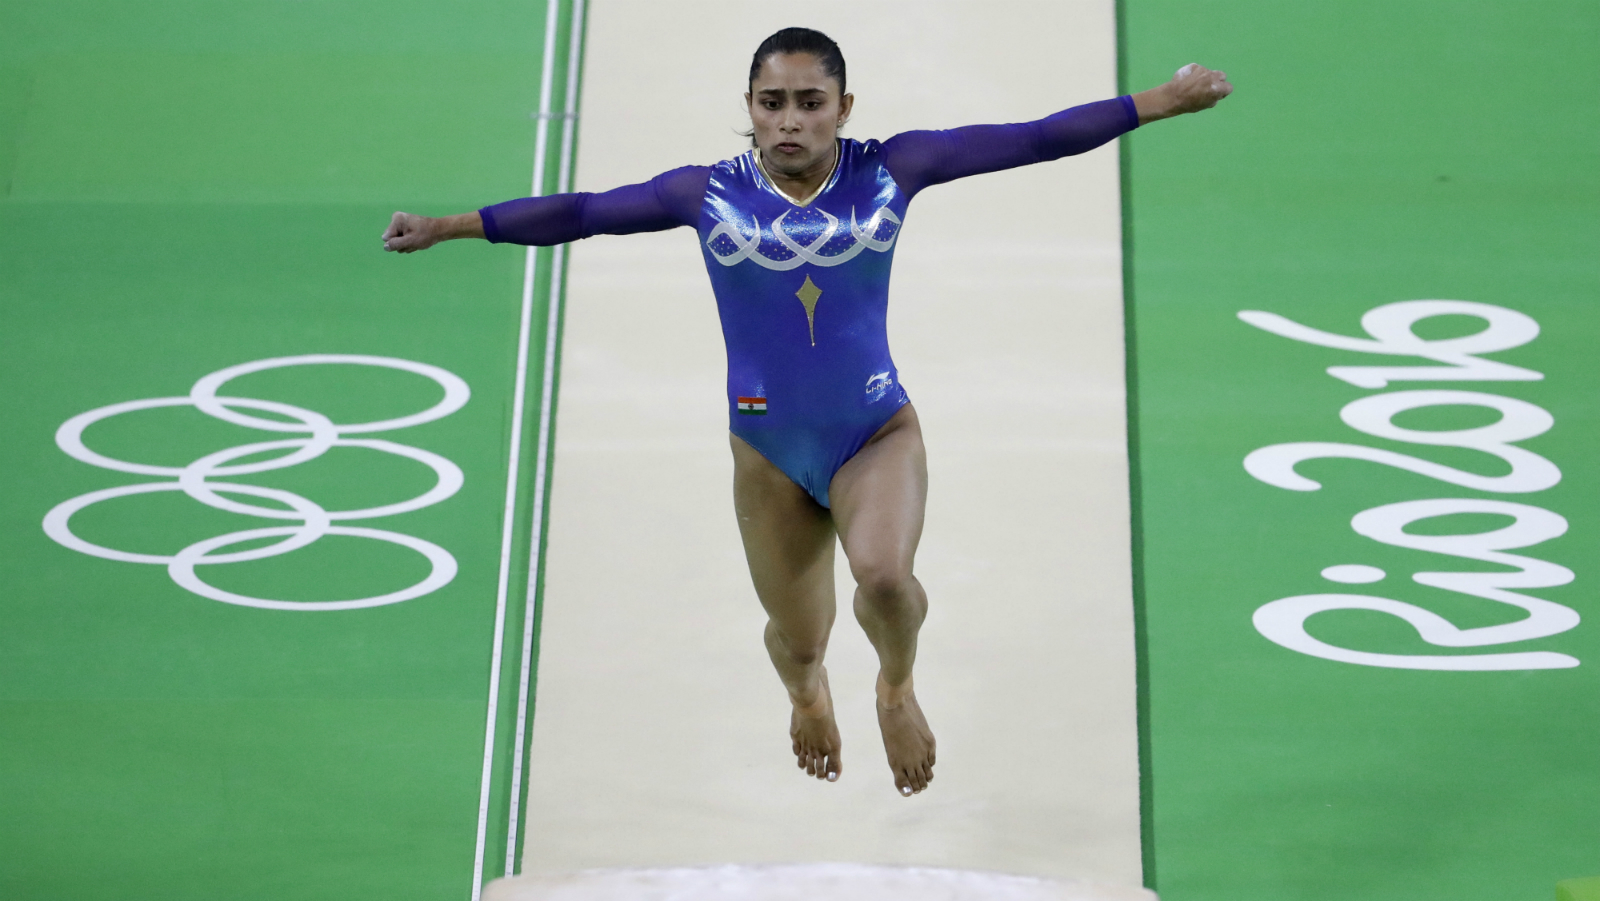 India's Dipa Karmakar performs on the vault during the artistic gymnastics women's apparatus final at the 2016 Summer Olympics in Rio de Janeiro, Brazil, Sunday, Aug. 14, 2016. ()